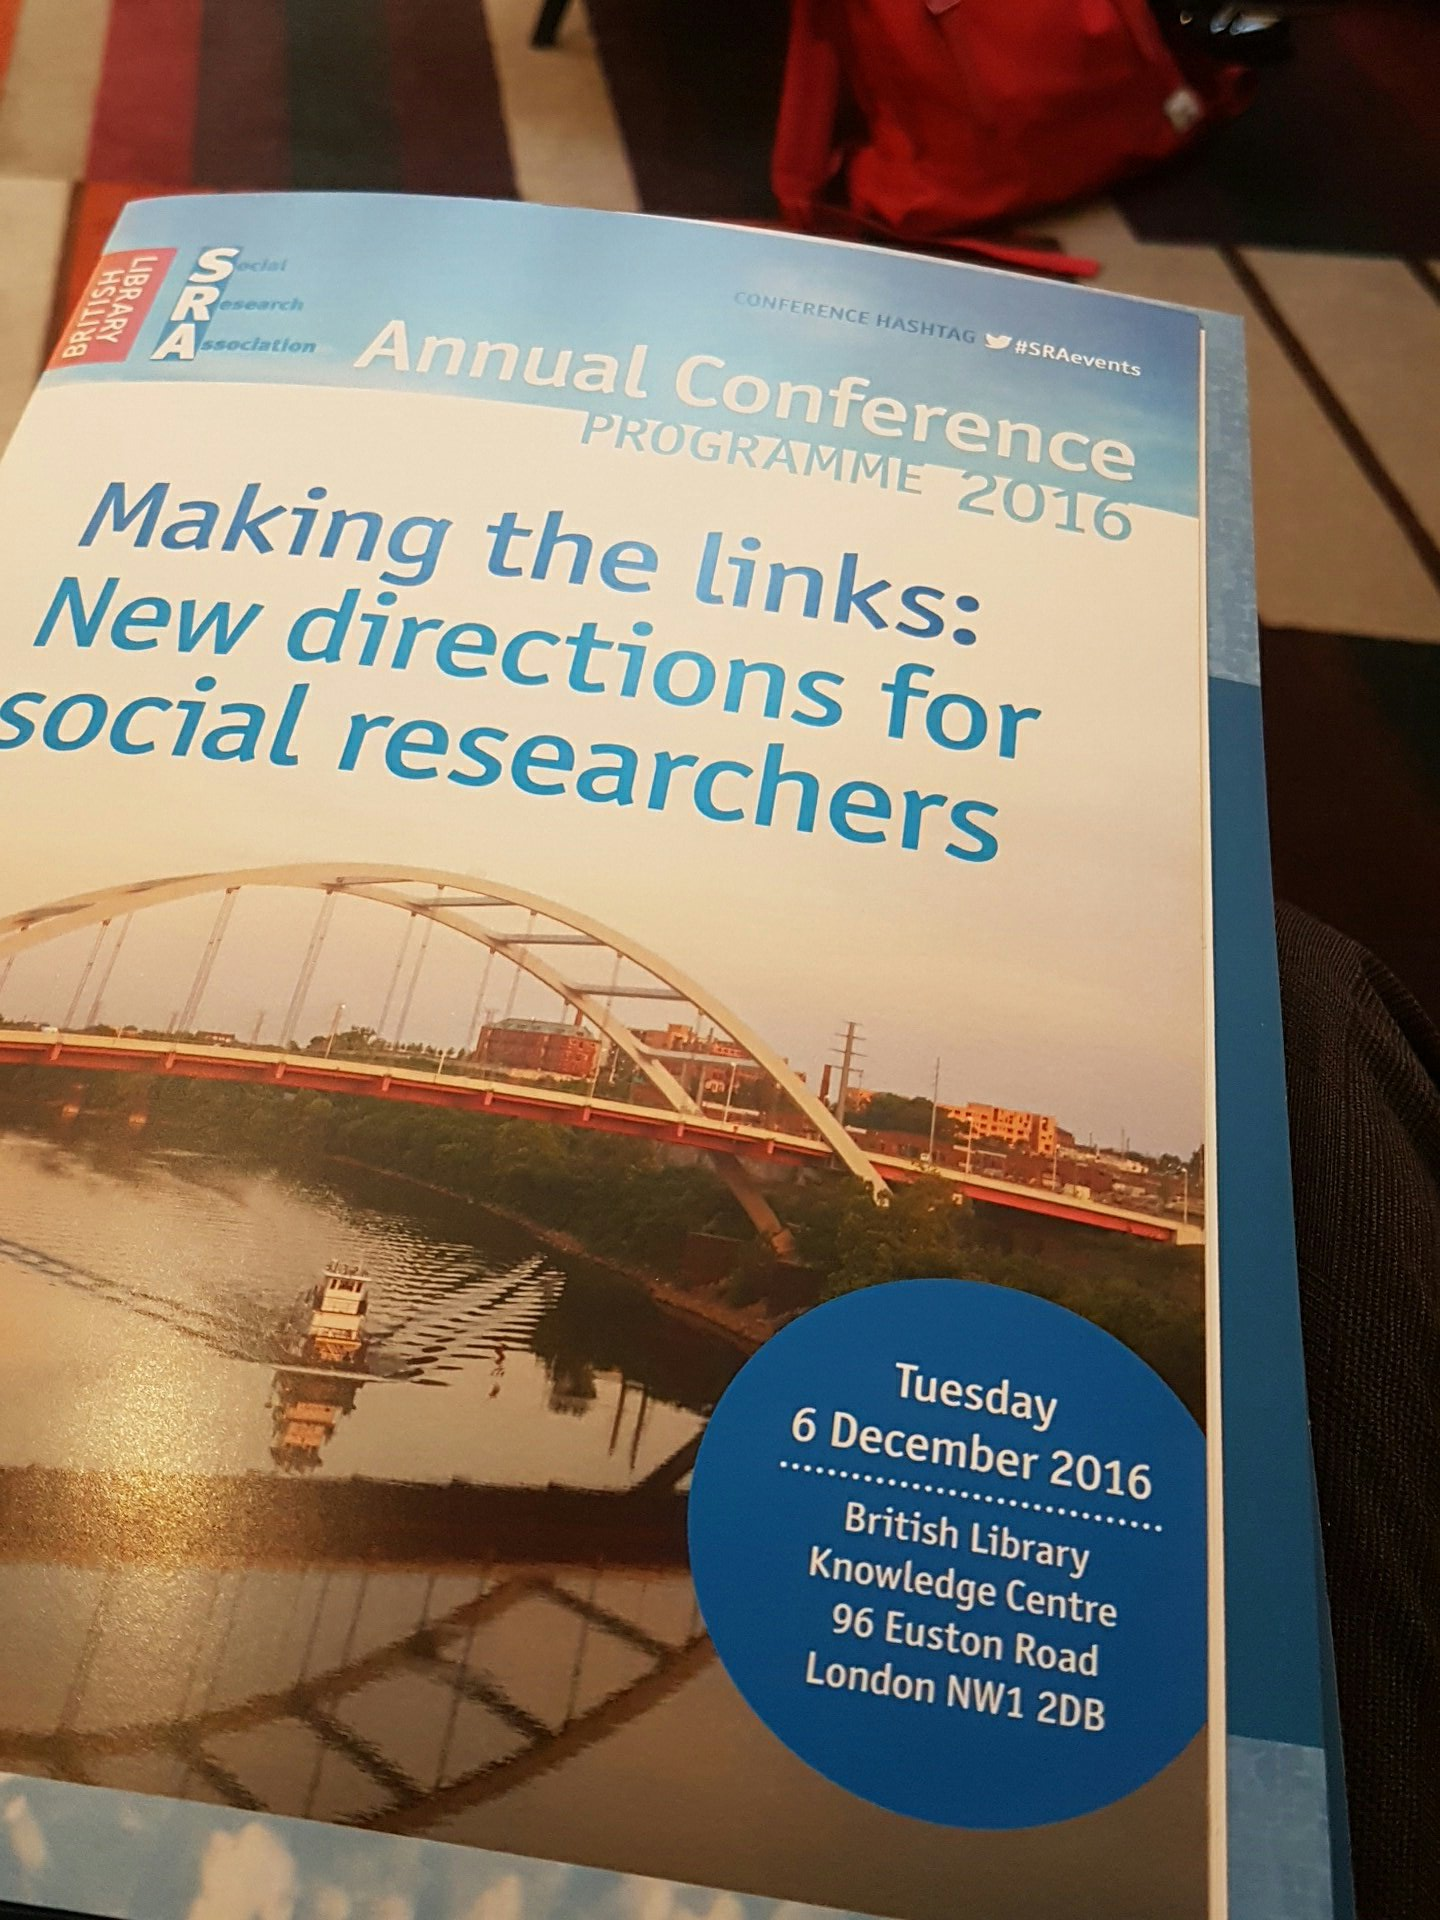 At @TheSRAOrg #sraevents Annual Conference today. Interesting programme with a lot of social research expertise in the room. https://t.co/ywduqZyOqE